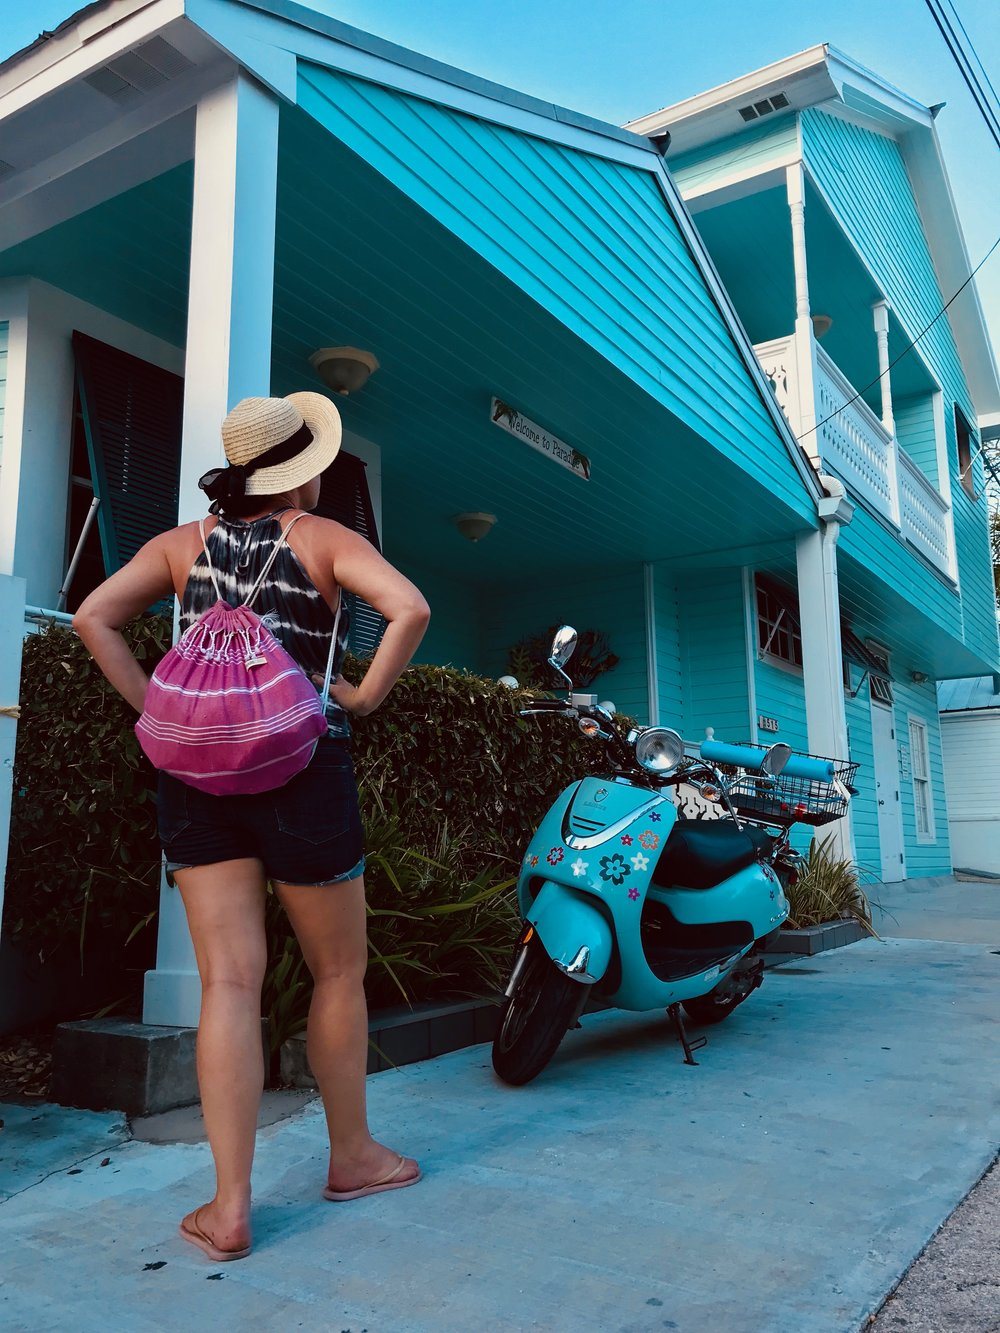 Finding cute blue themes in Downtown Key West.